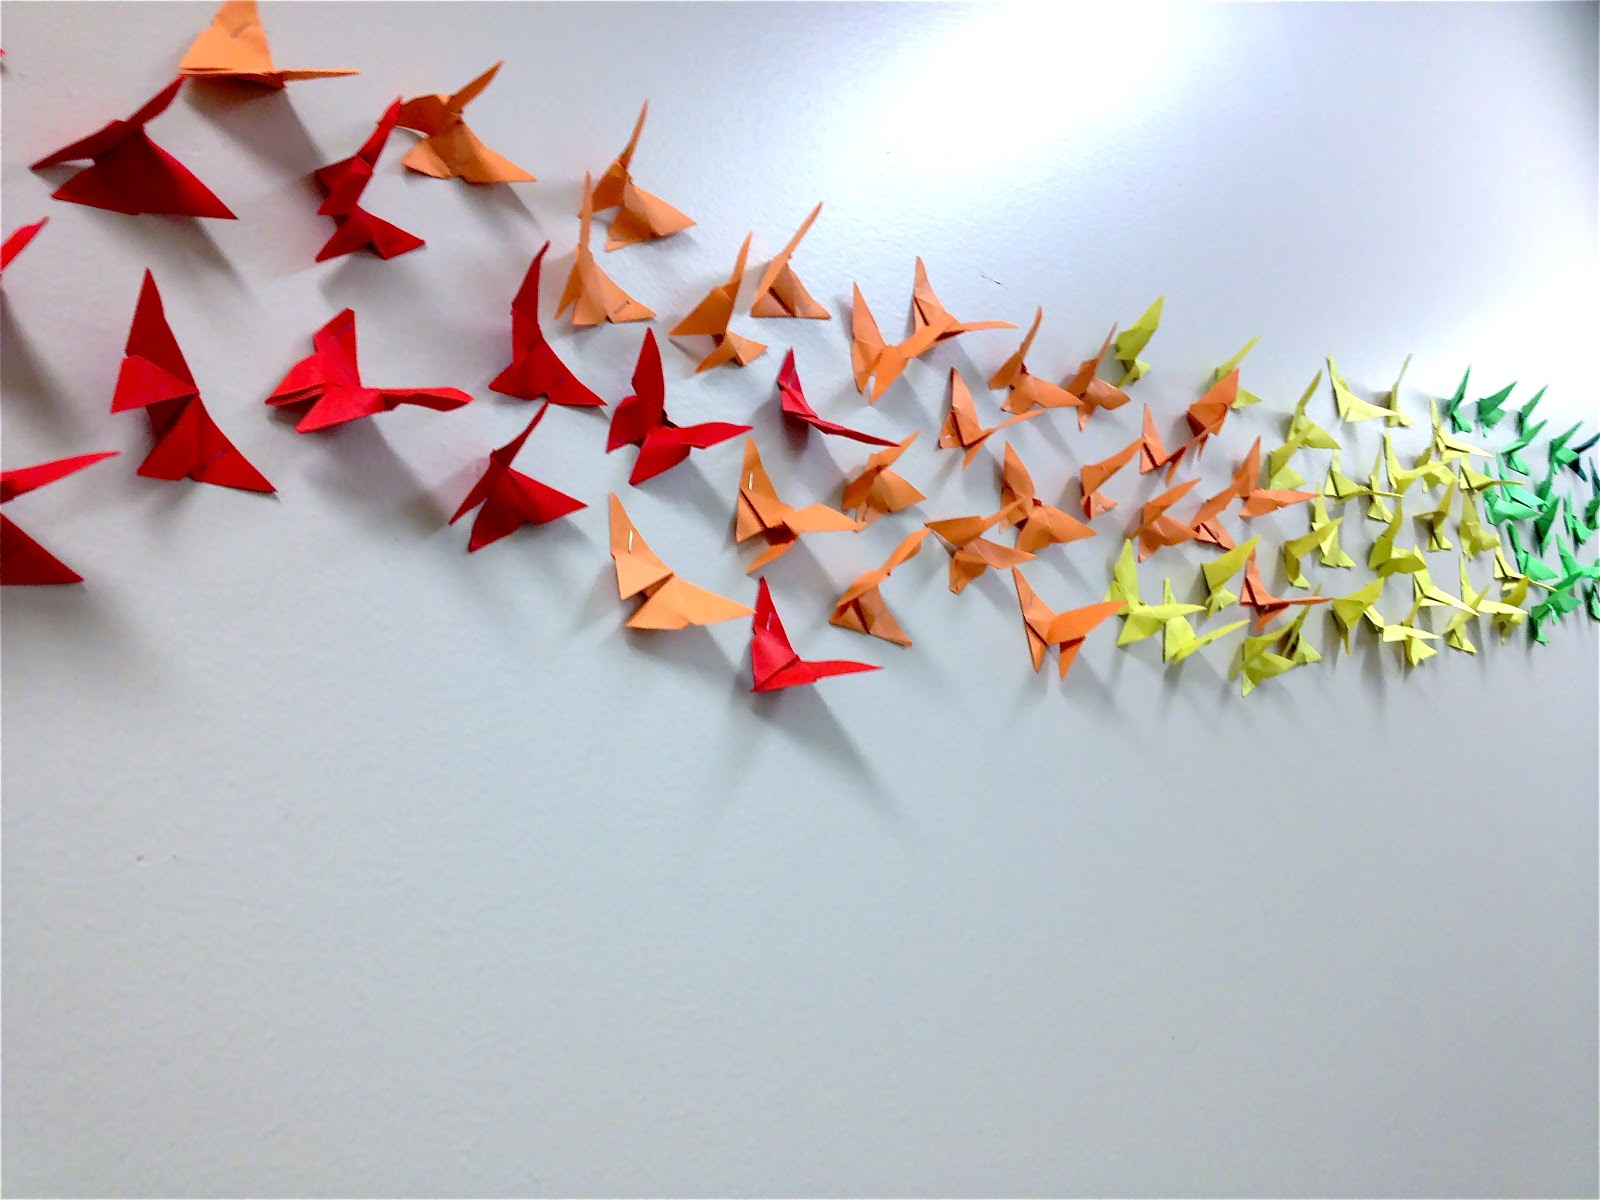 Butterfly Origami Wall - photo#38